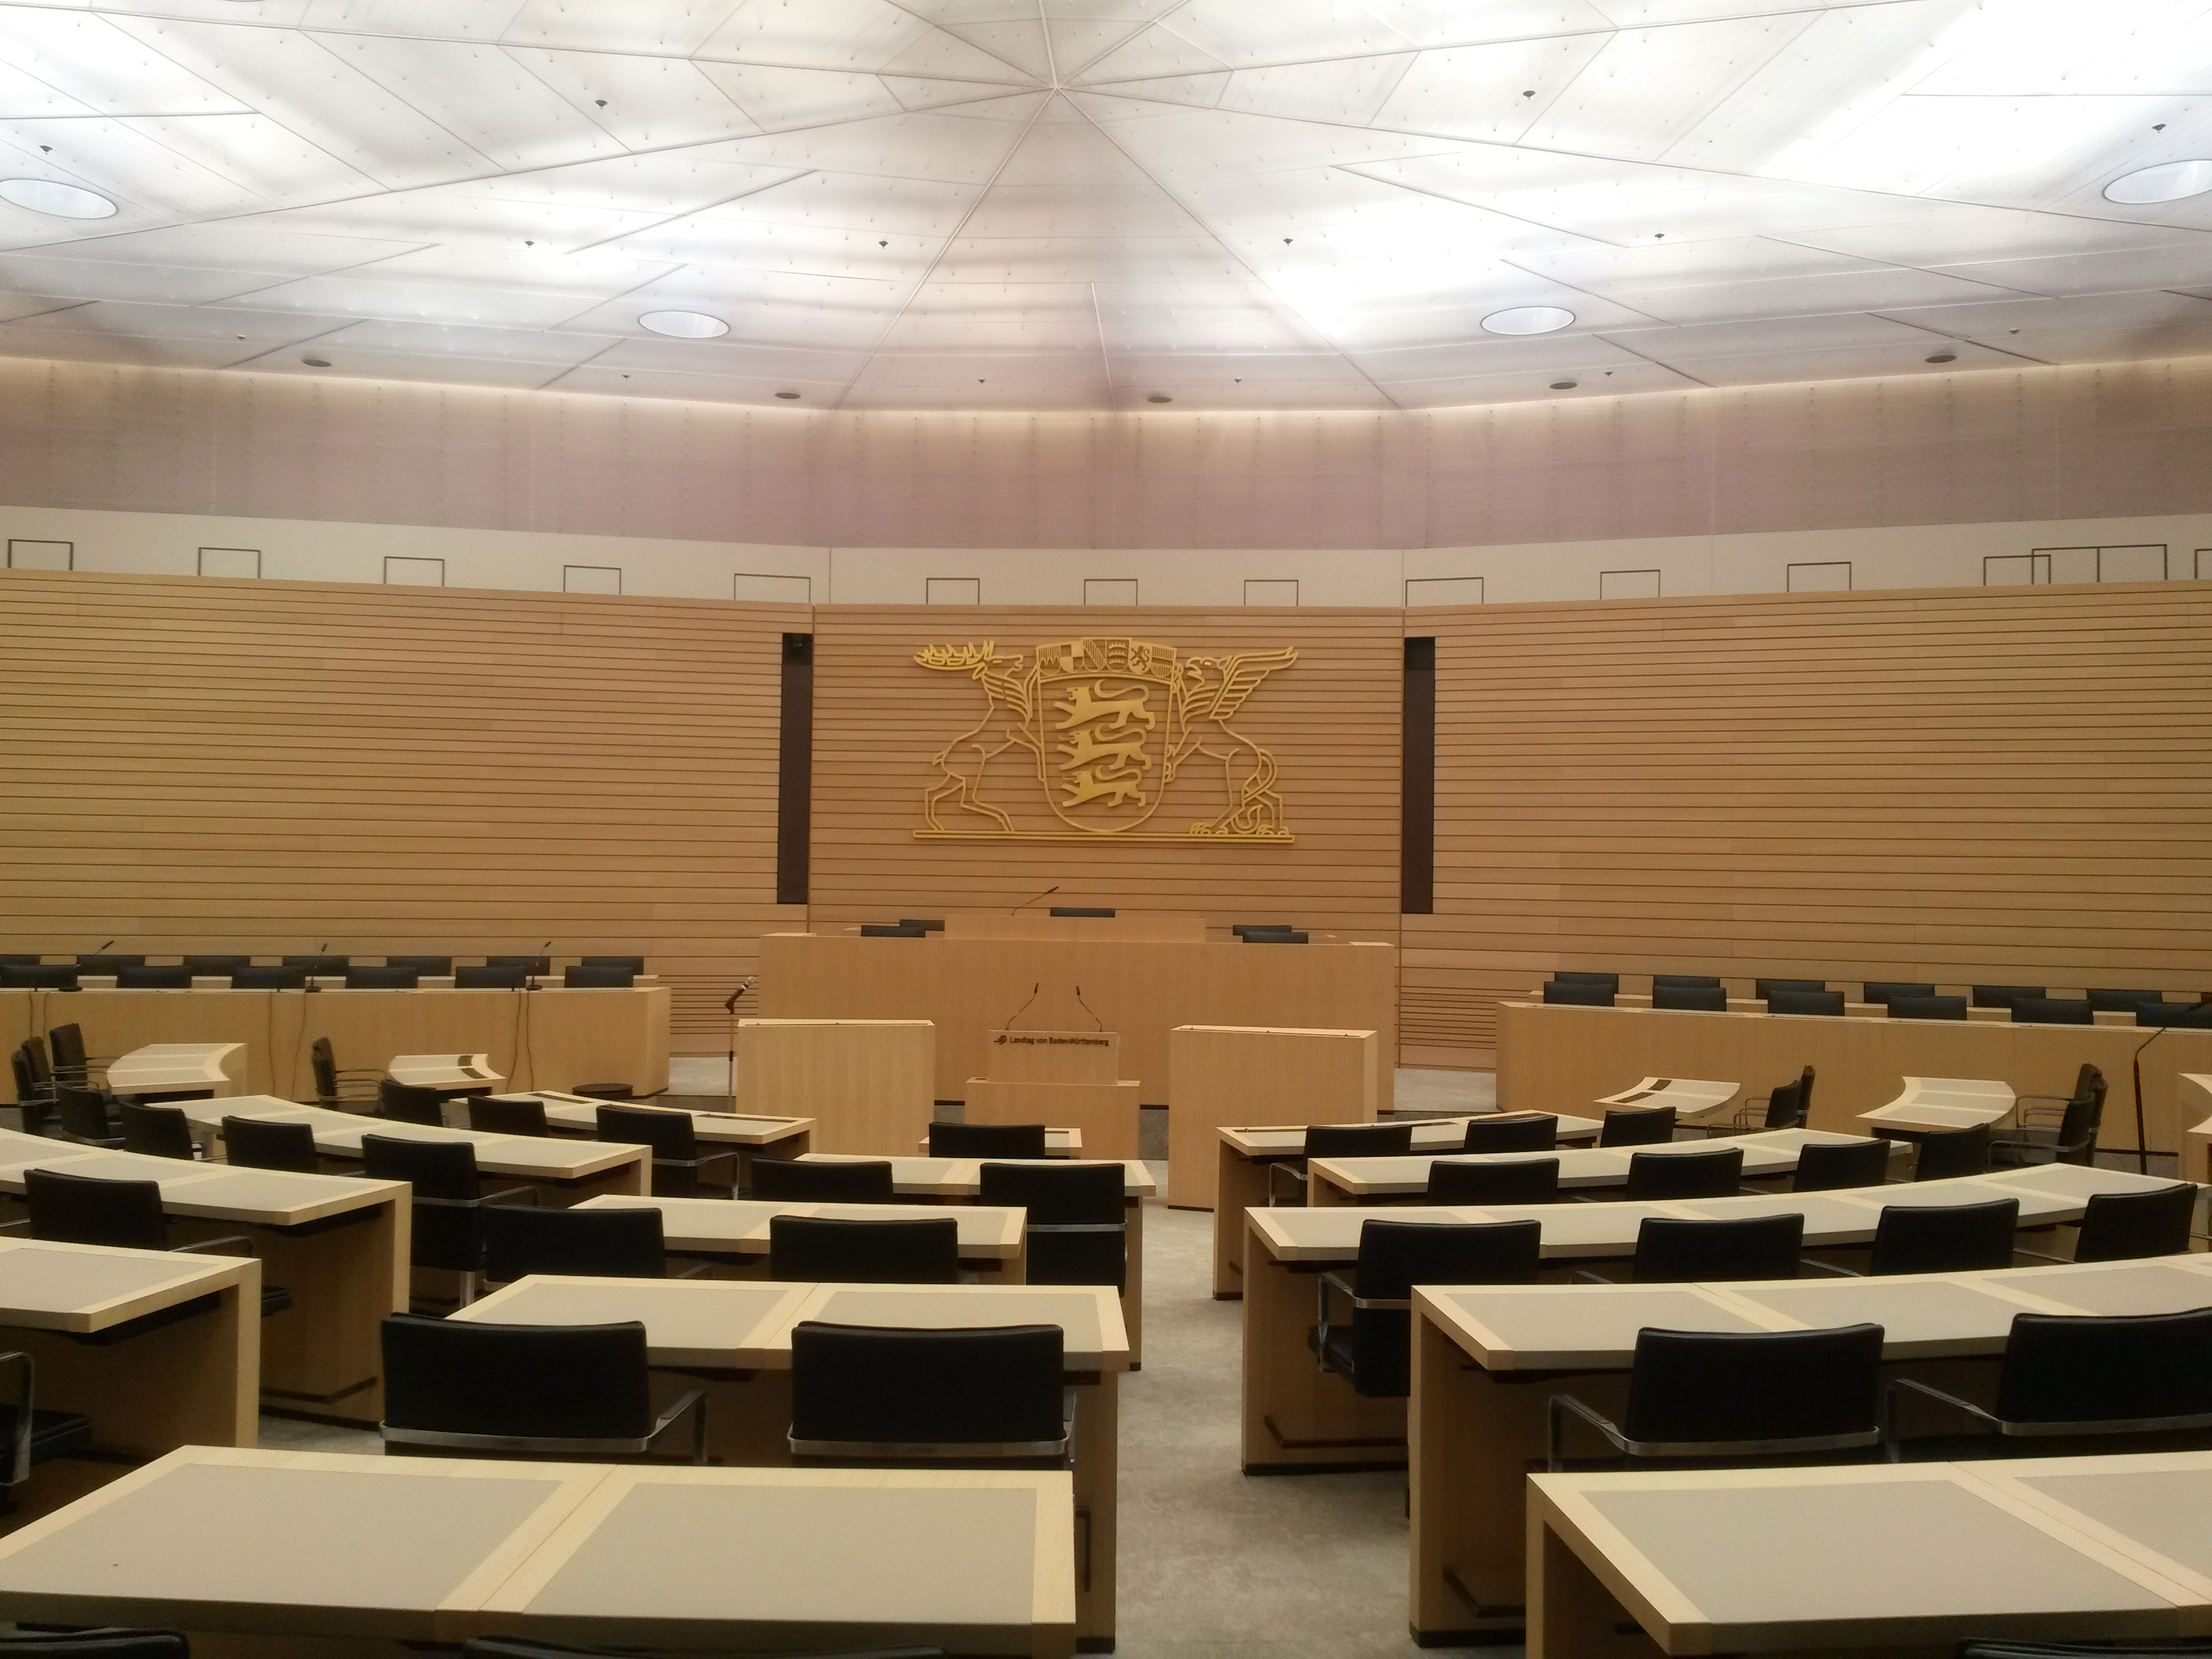 Foto: https://commons.wikimedia.org/wiki/File:Landtag_Baden-W%C3%BCrttemberg_2017.jpeg